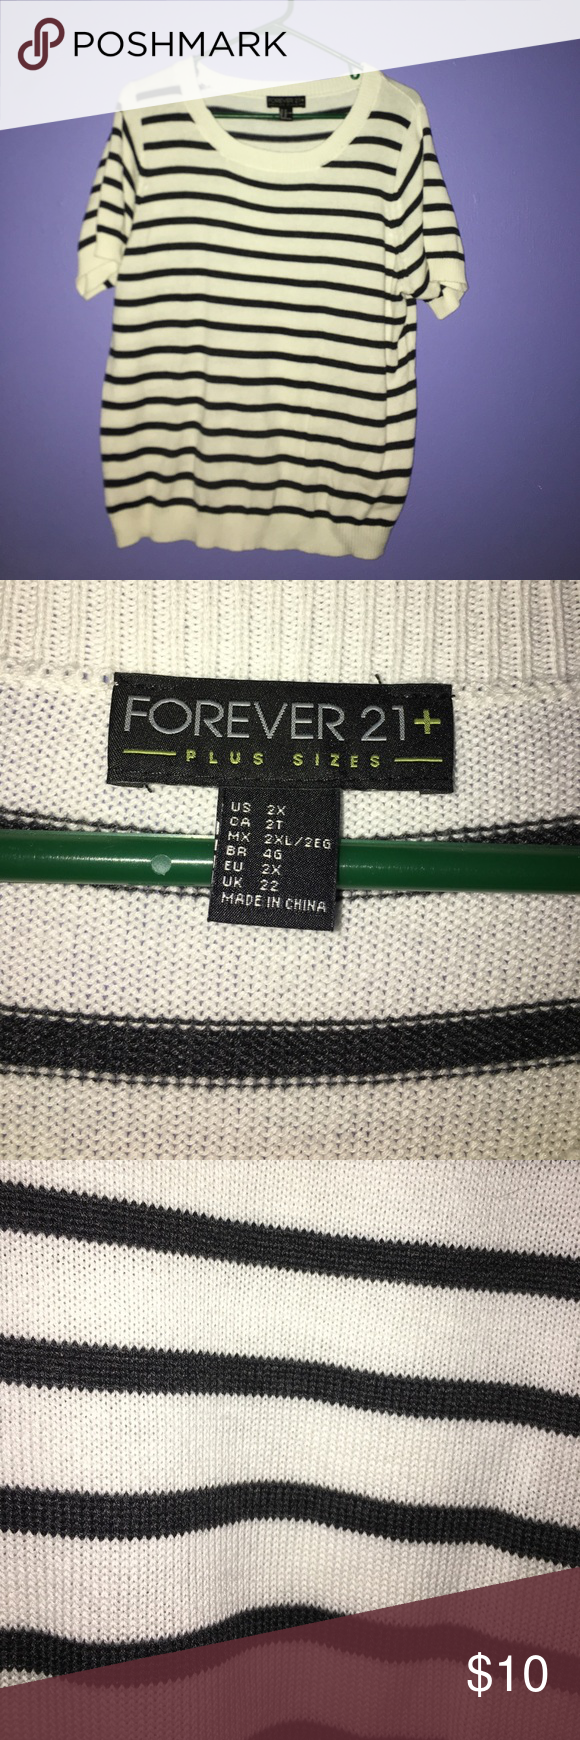 F21 white and black Forever 21 white and black short sleeve sweater Forever 21 Sweaters